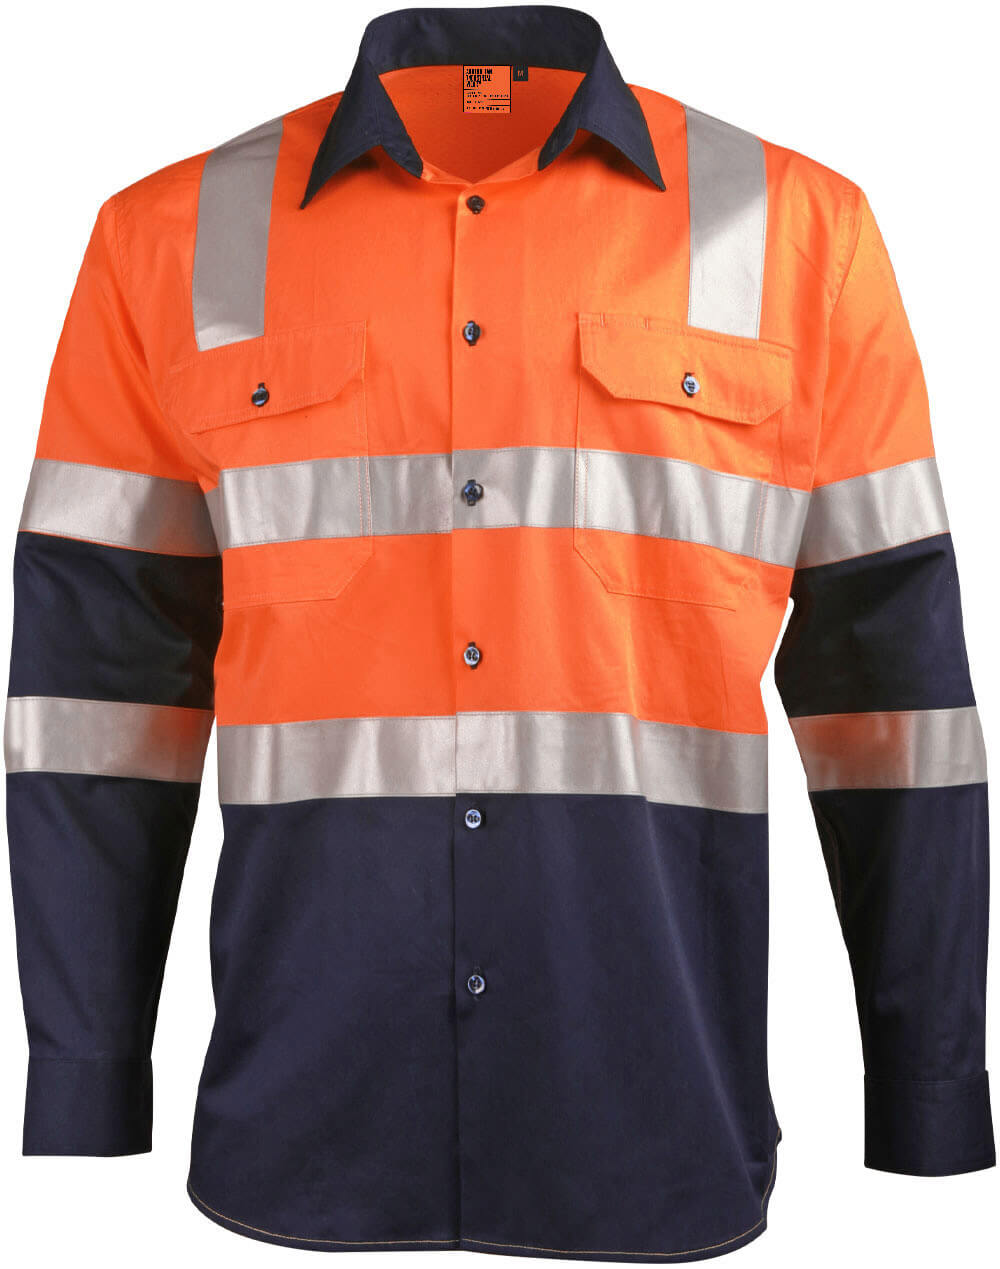 WS Biomotion Day/Night Light Weight Safety Shirt with X Back Tape Configuration SW70